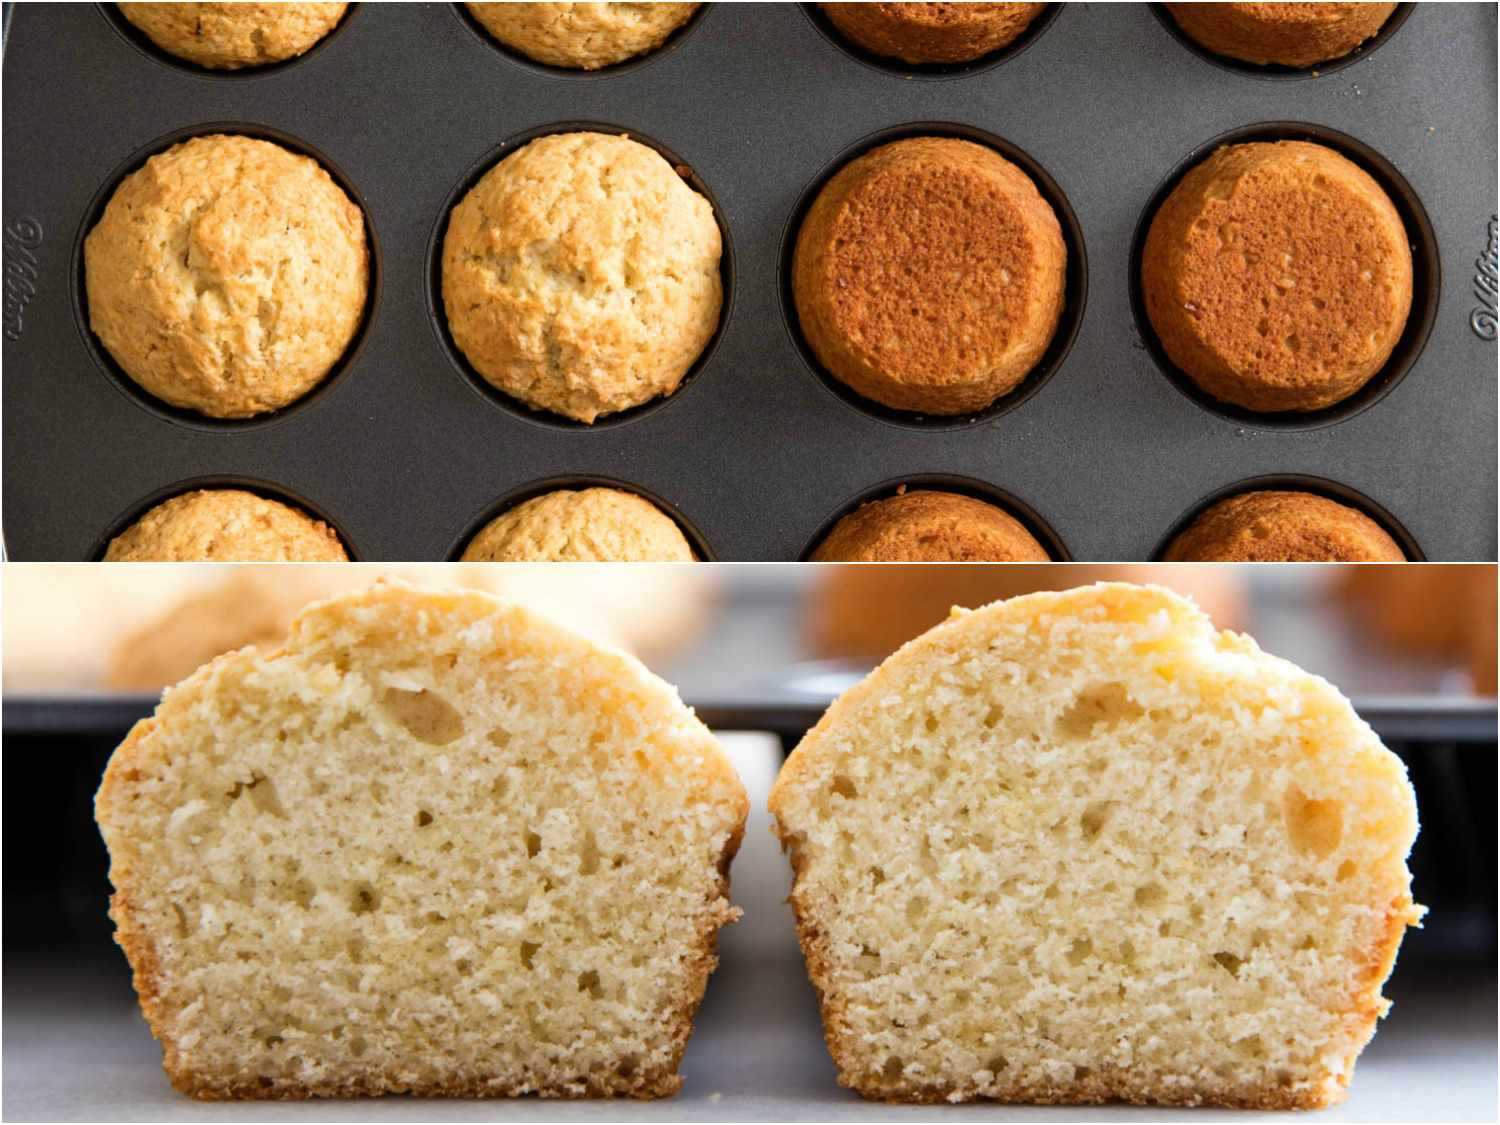 Collage of muffin photos: tops and bottoms of muffins made in a dark nonstick pan, showing the height and browning of muffins baked in nonstick pans